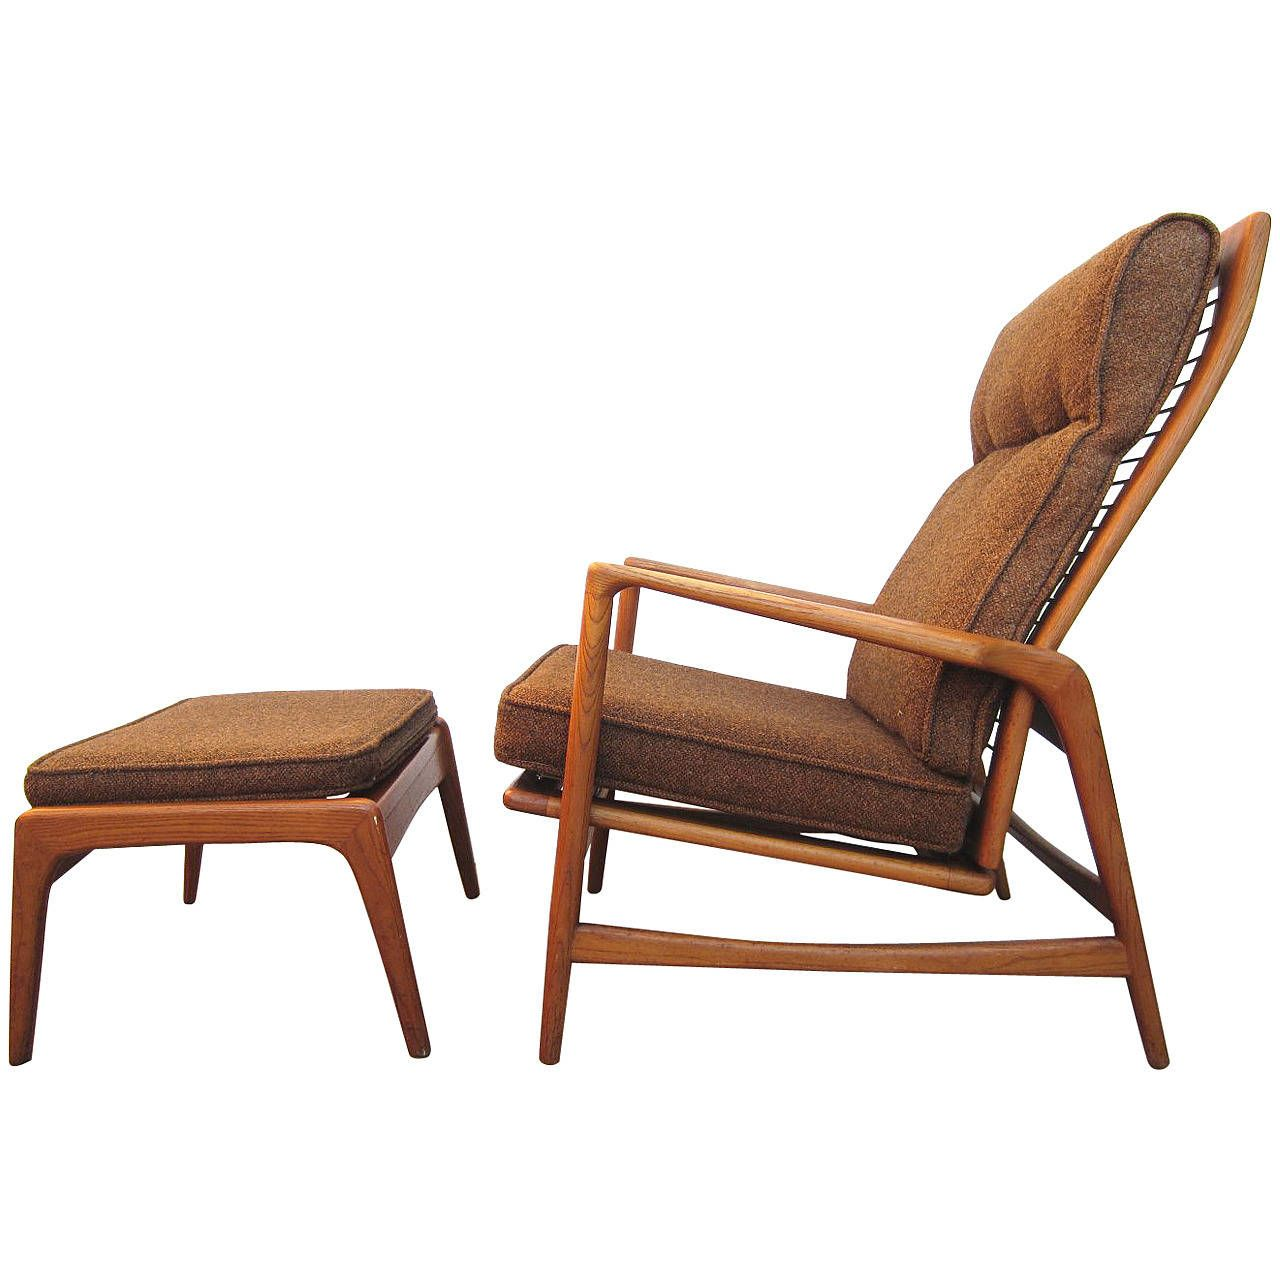 1950 Danish Mid Century Modern Lounge Chair And Ottoman Ib Kofod Mid  Century Modern Lounge Chair